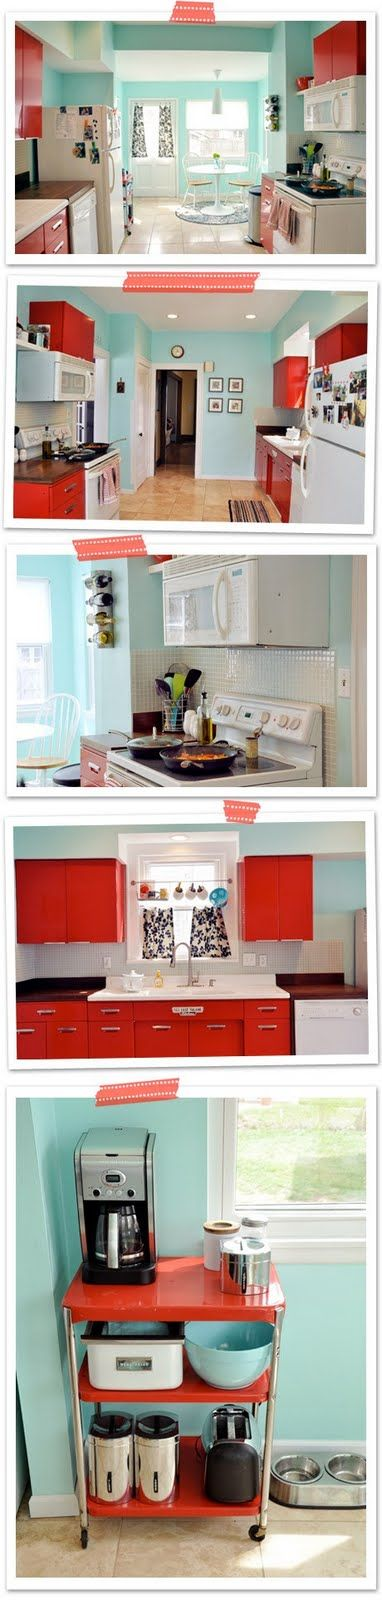 retro kitchen -- love the colors but the red cabinets are a bit much